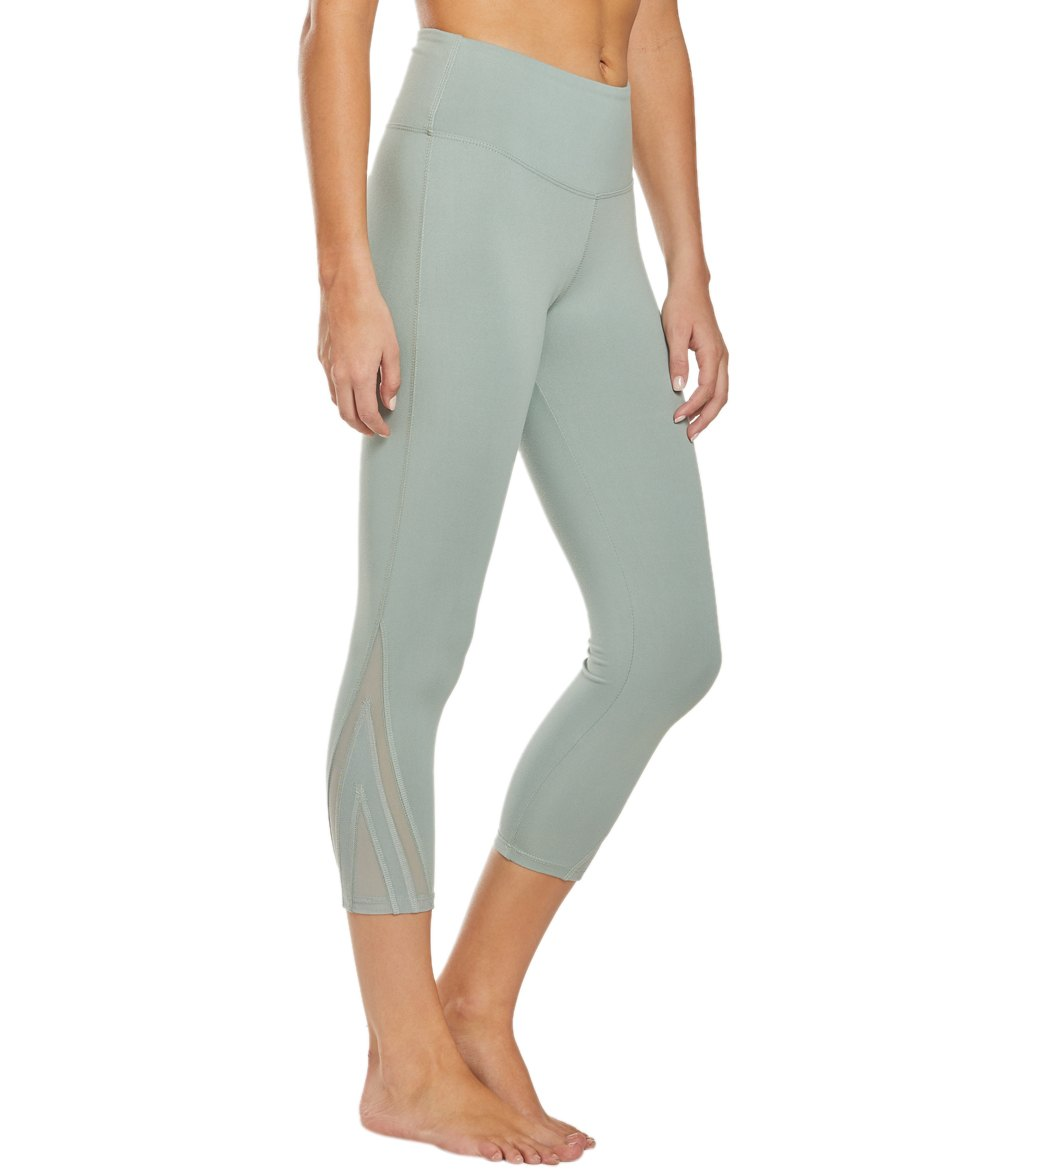 Balance Collection Amanda Yoga Capri Pants - Slate Grey Cotton